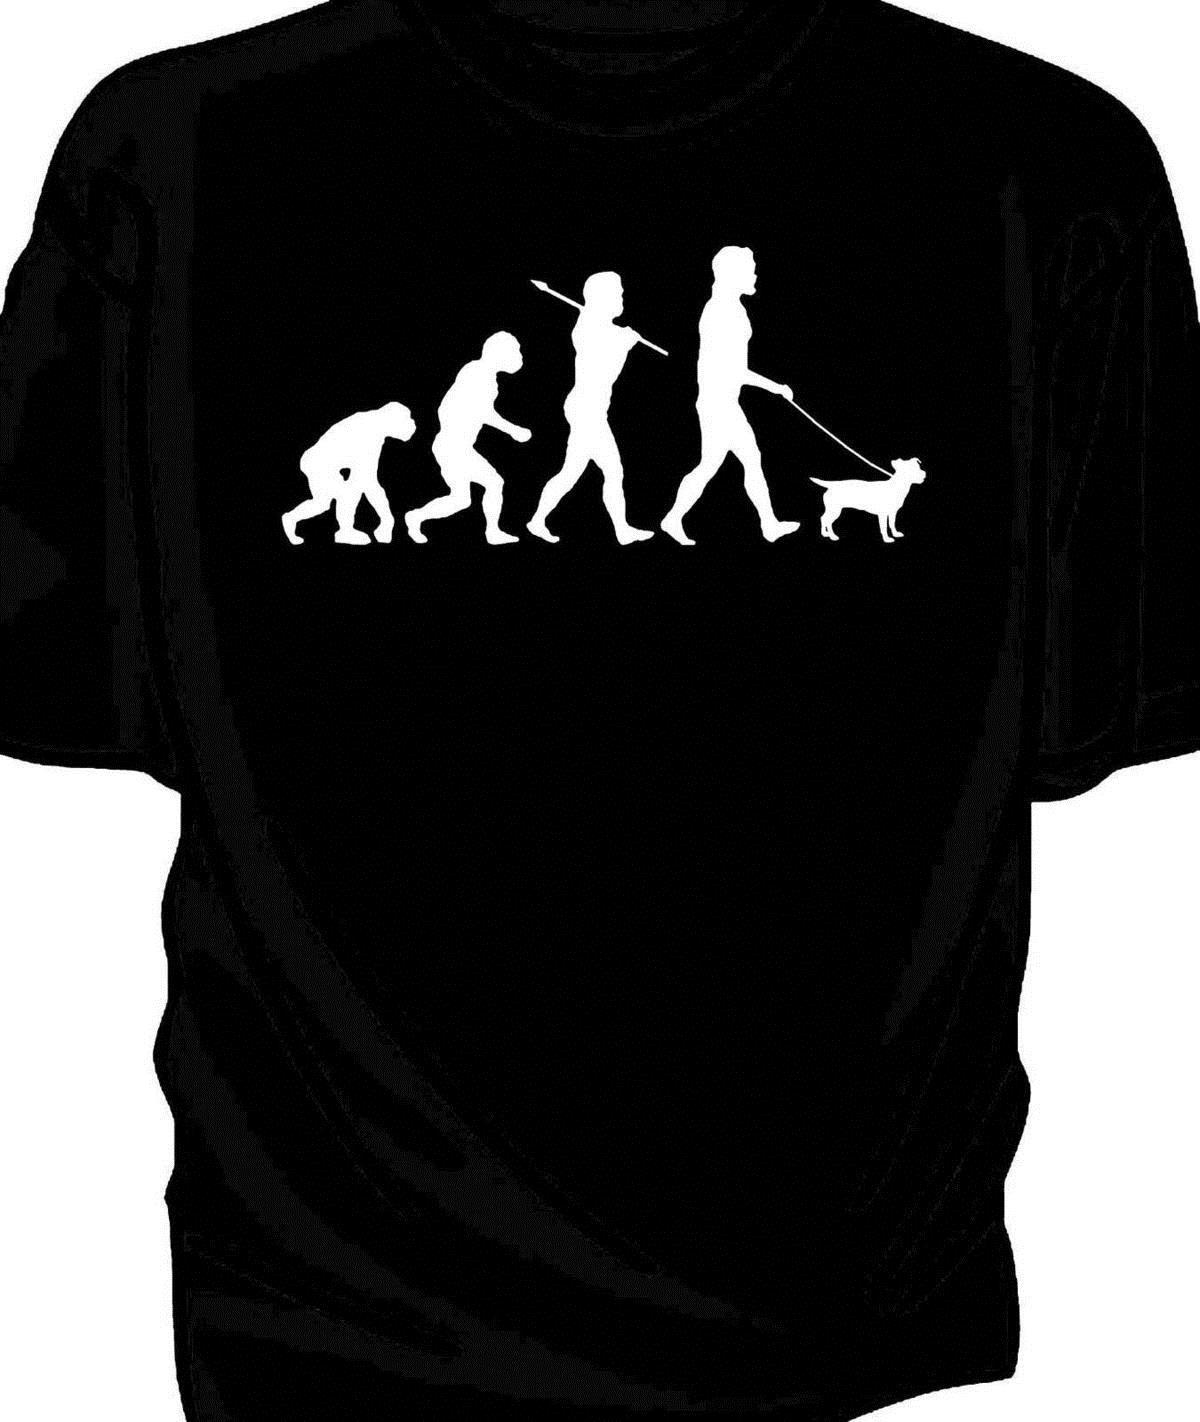 16733ae8 Evolution Of Man, Jack Russell Terrier T Shirt 2018 High Quality Brand Men T  Shirt Casual Short Sleeve O Neck Fashion Printed 100% Great Tee Shirts Cool  Tee ...